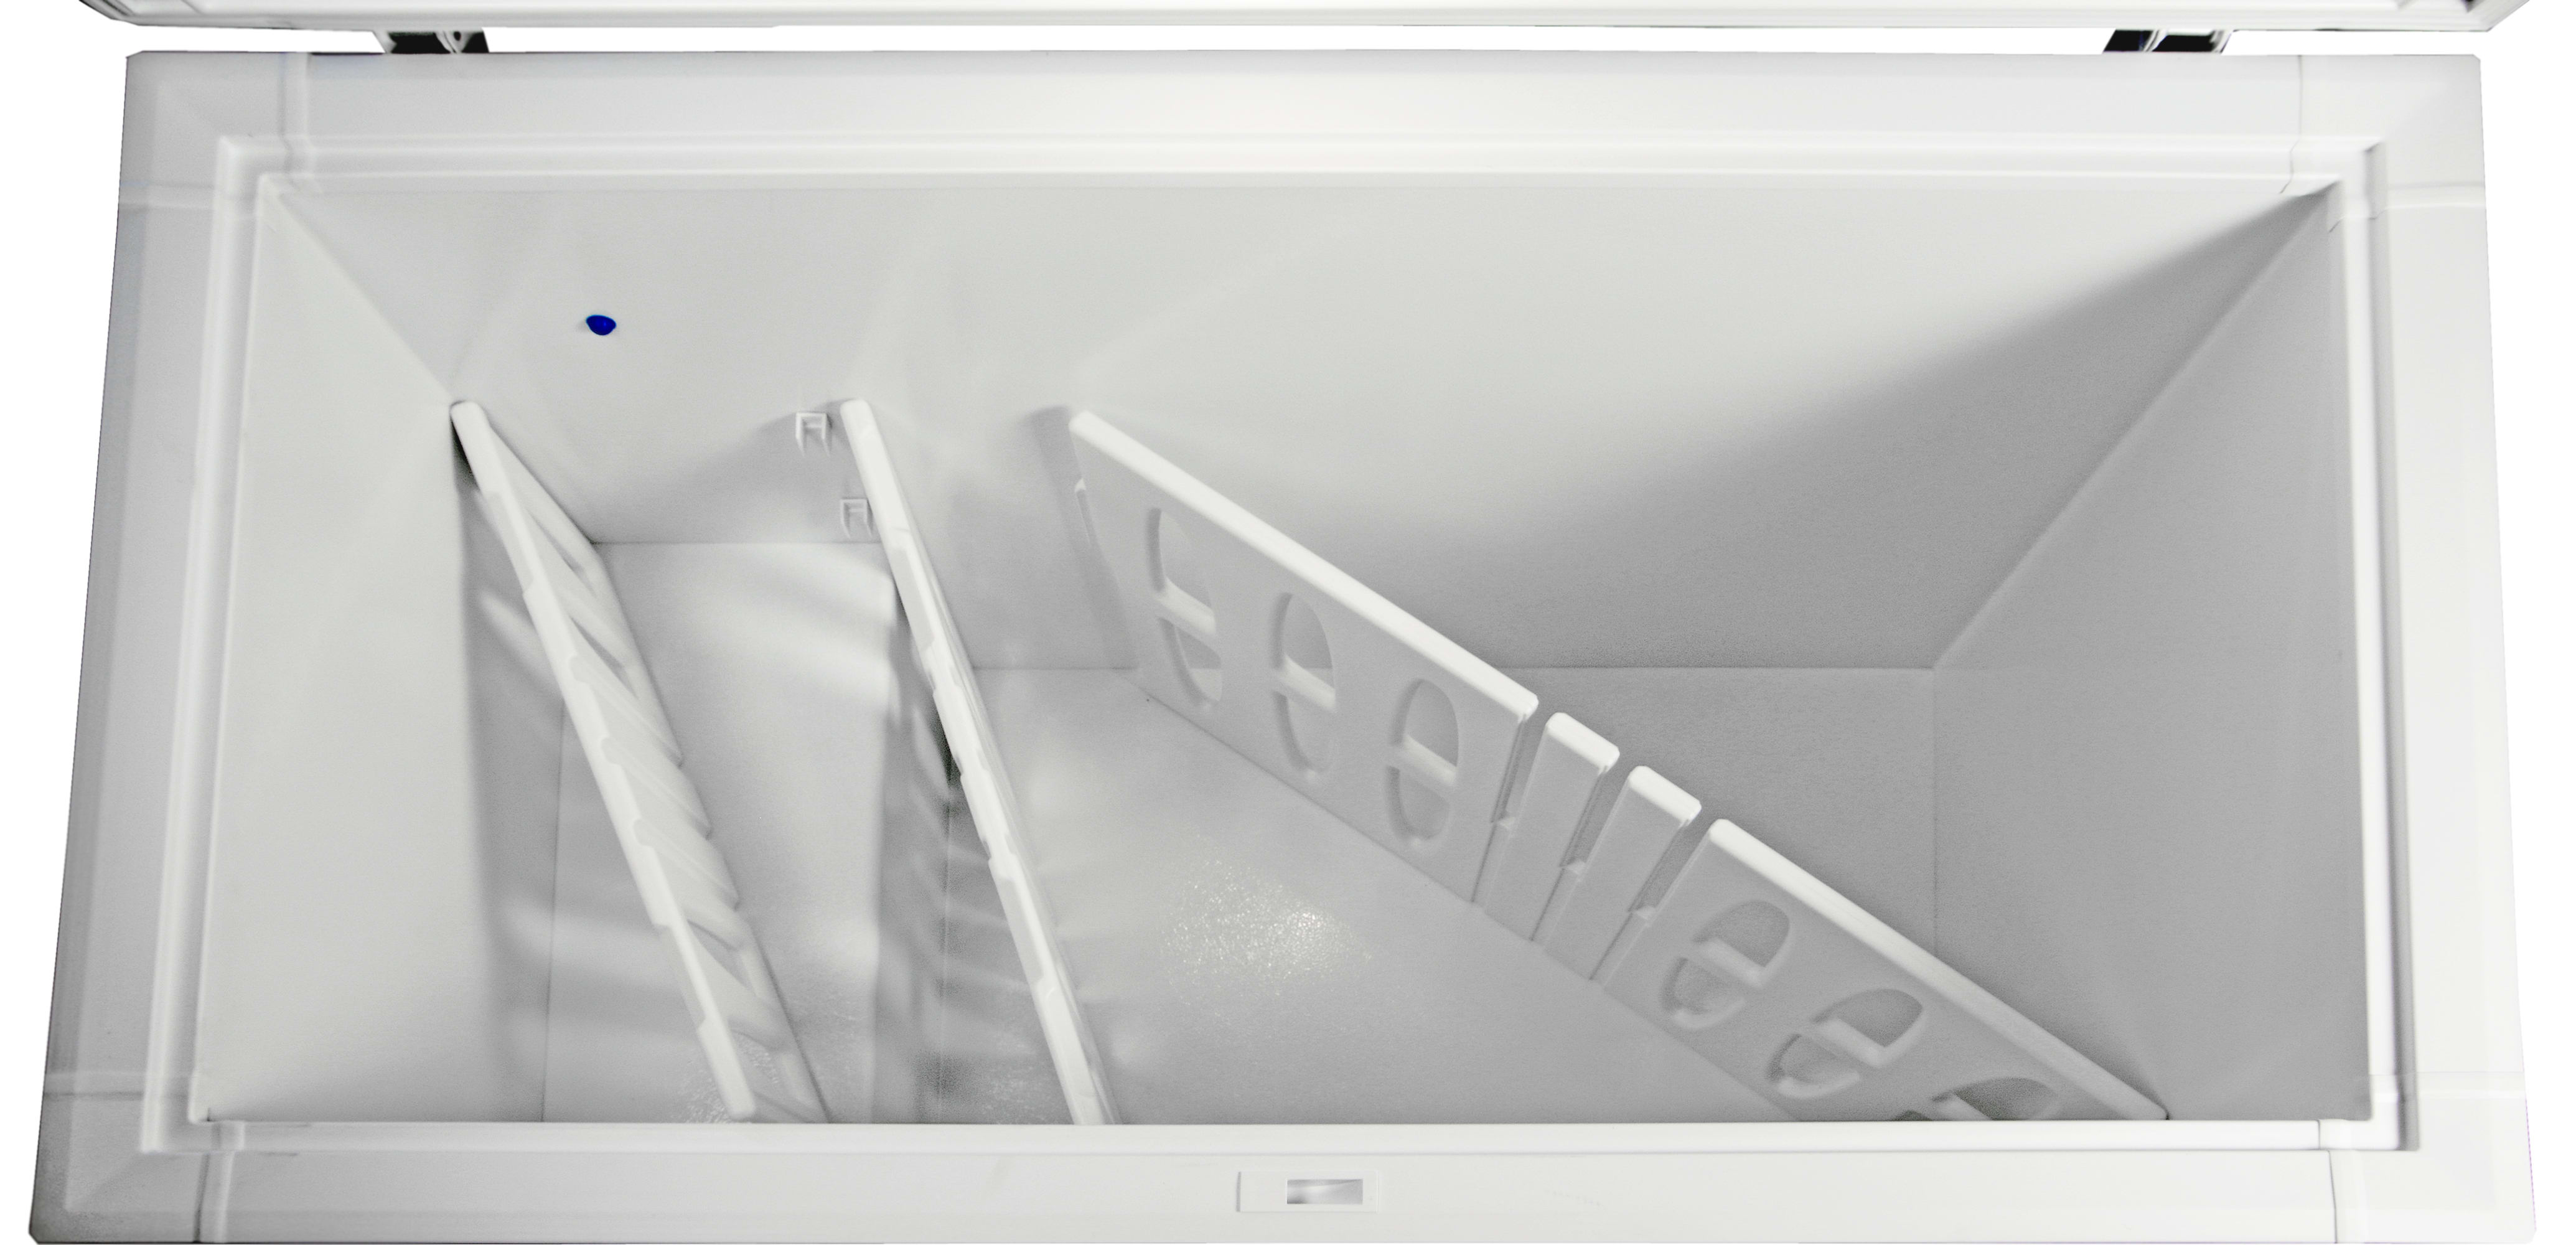 The Kenmore 16542's plastic dividers are adjustable, easy to move, and completely optional.